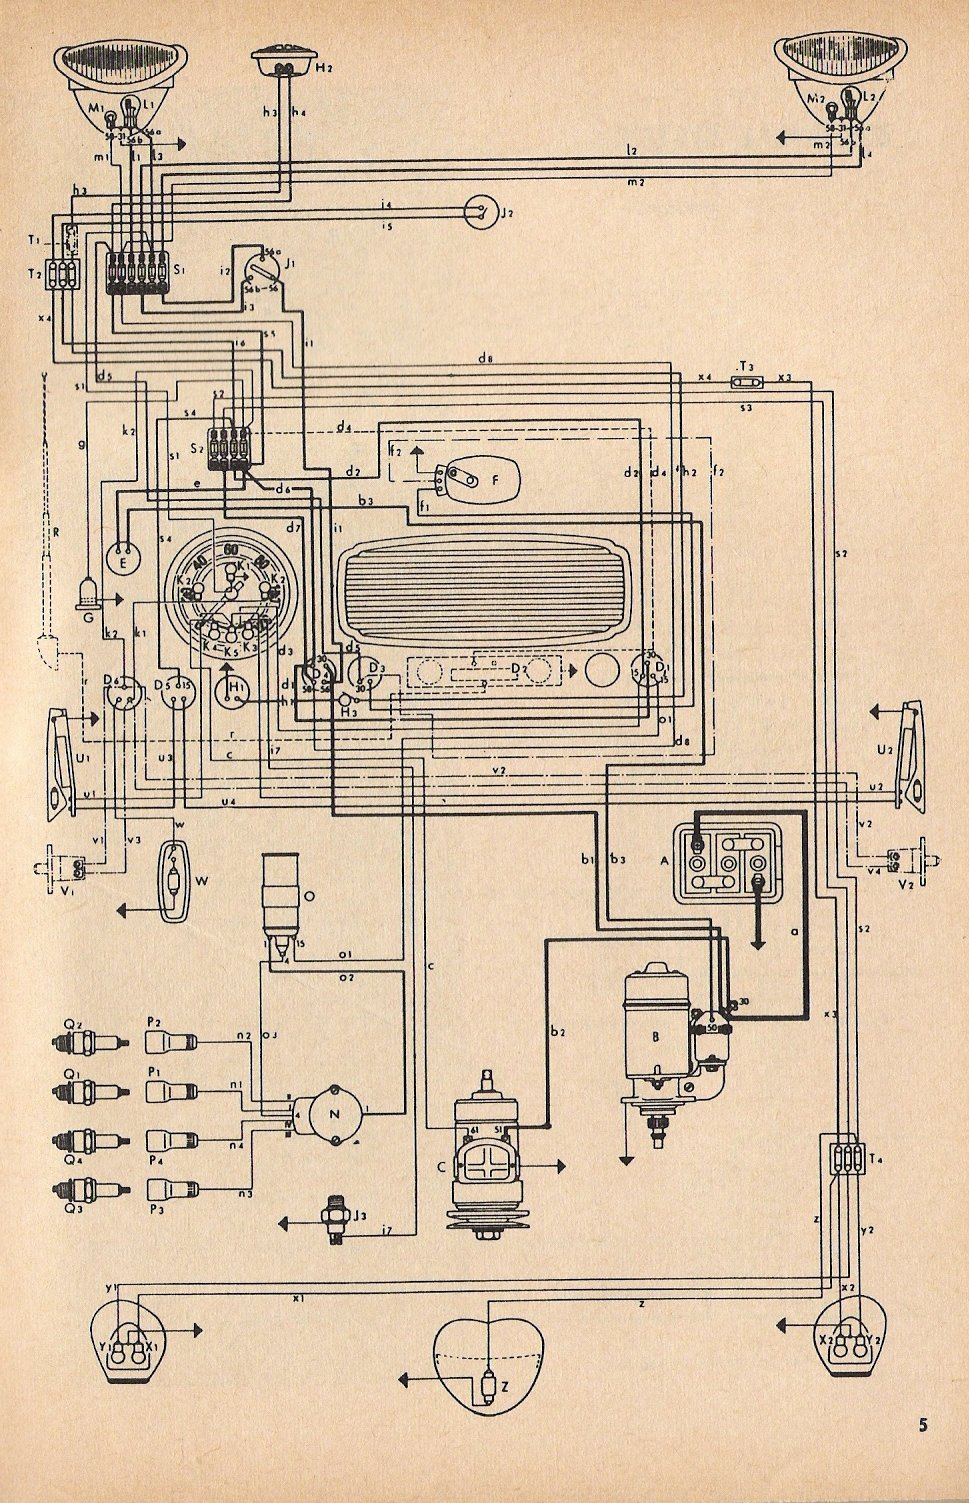 bug_todec53 1967 vw beetle wiring diagram vw bug wiring diagram \u2022 free wiring 1964 VW Beetle Wiring Diagram at creativeand.co